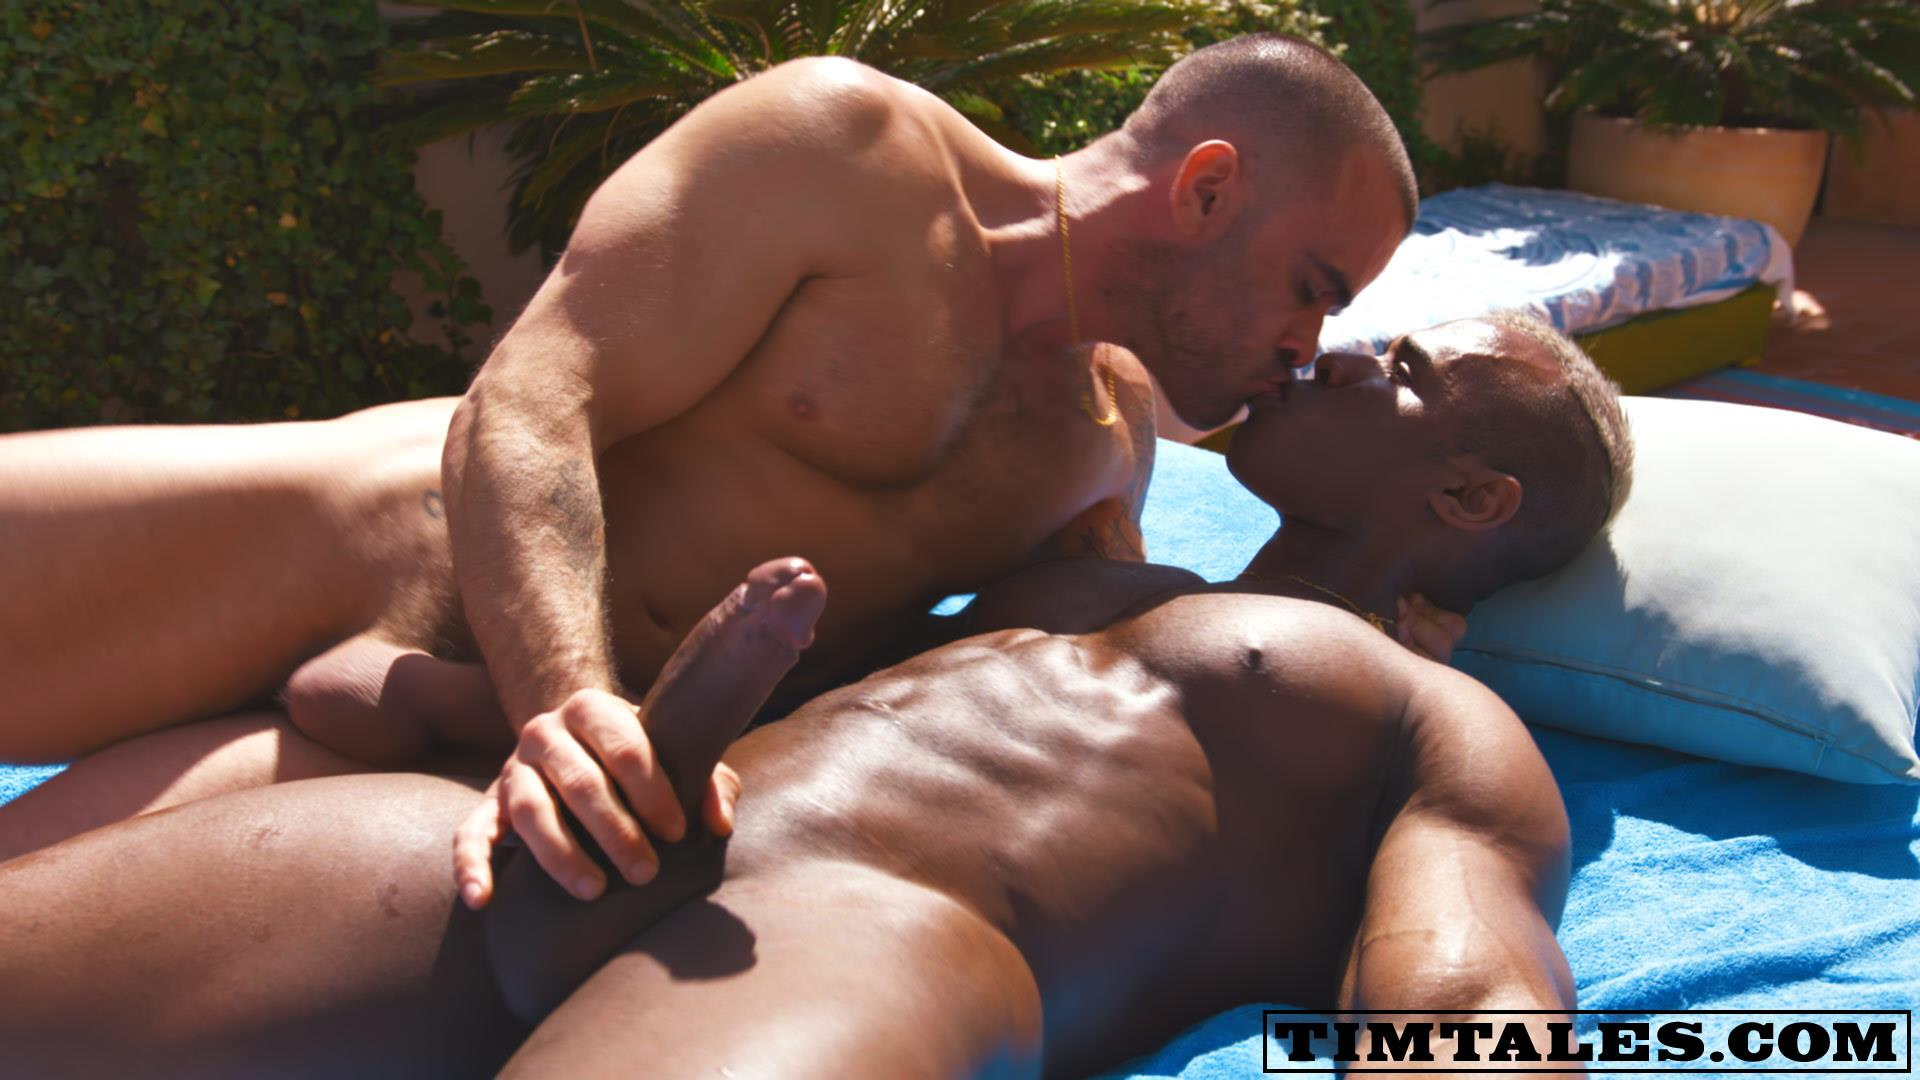 TimTales-Ridder-Rivera-and-Damien-Crosse-Big-Uncut-Cuban-Cock-Gay-Bareback-Sex-Video-03 TimTales: Ridder Rivera Barebacking Damien Crosse With His Big Uncut Cock